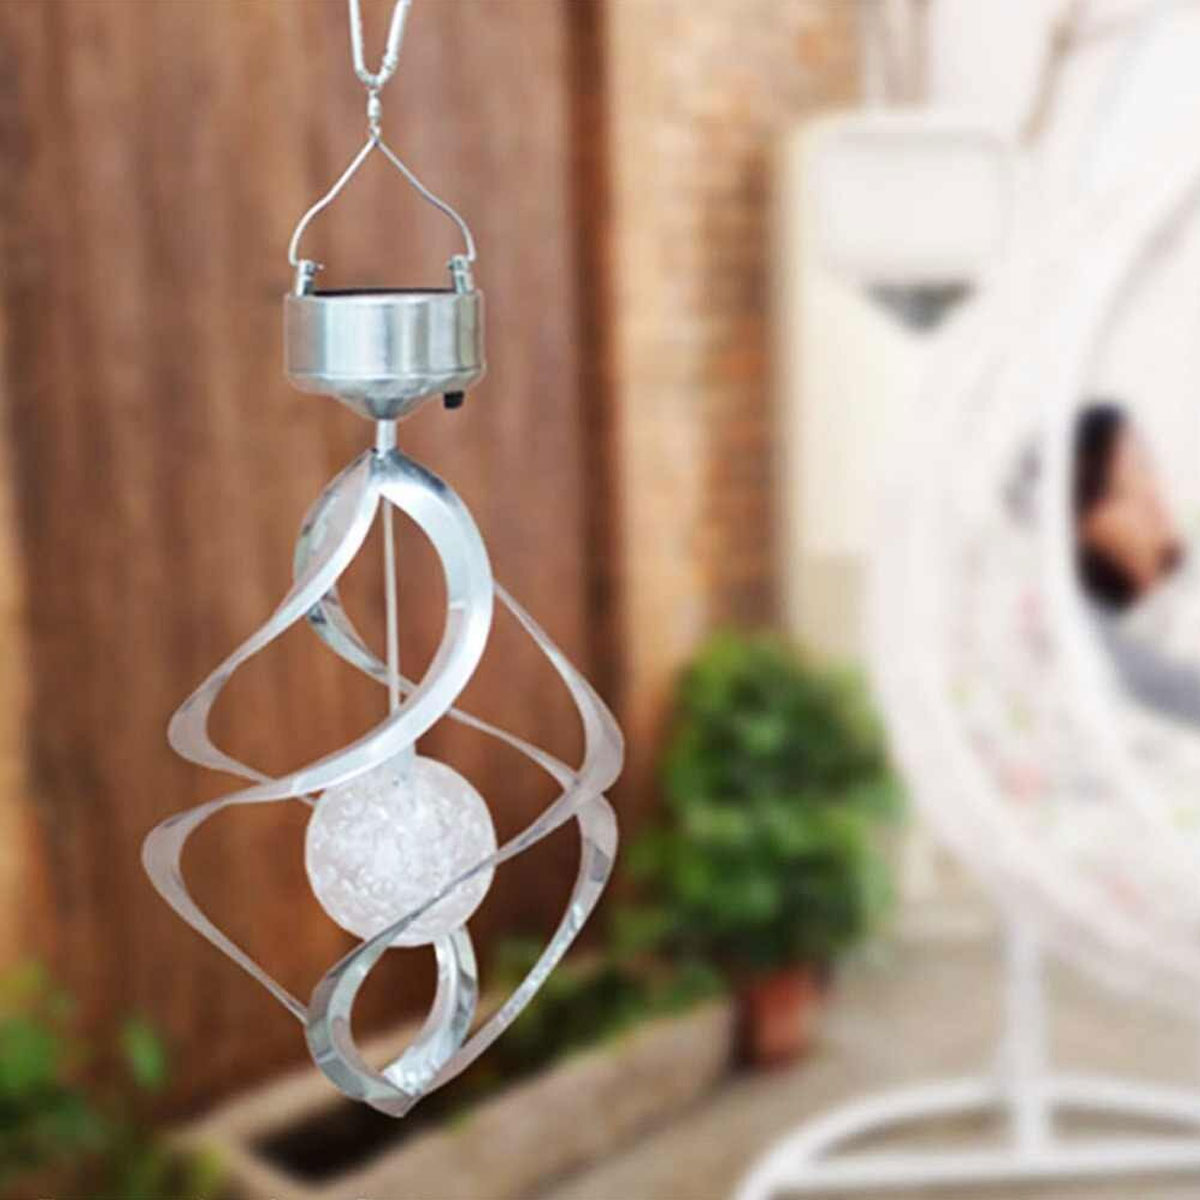 Color Changing Solar Wind Chime Light with Gorgeous Spiral Design